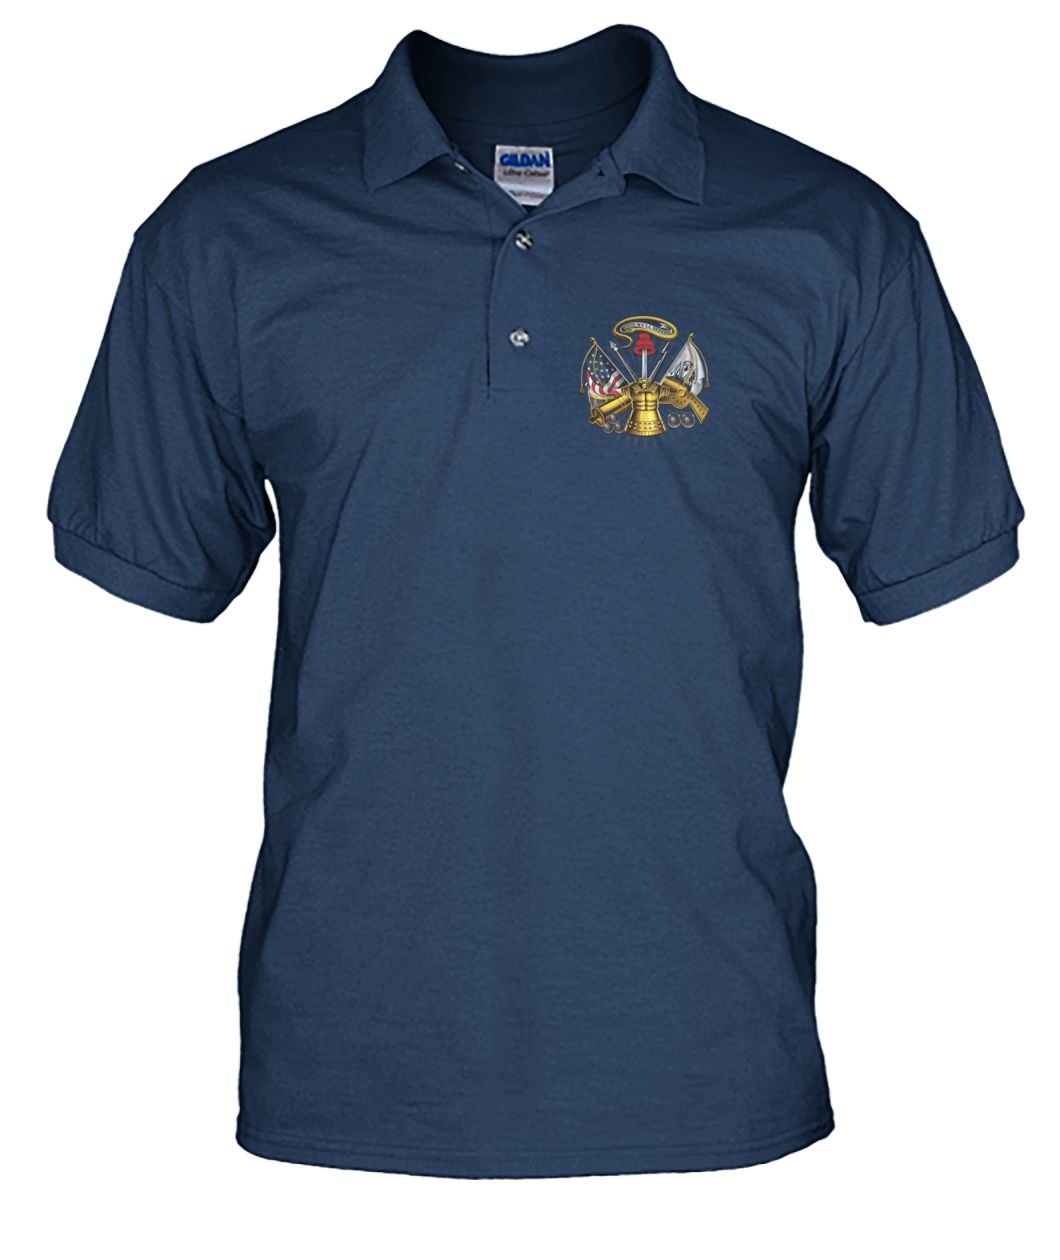 U.S ARMY CLASSIC POLO SHIRT wp